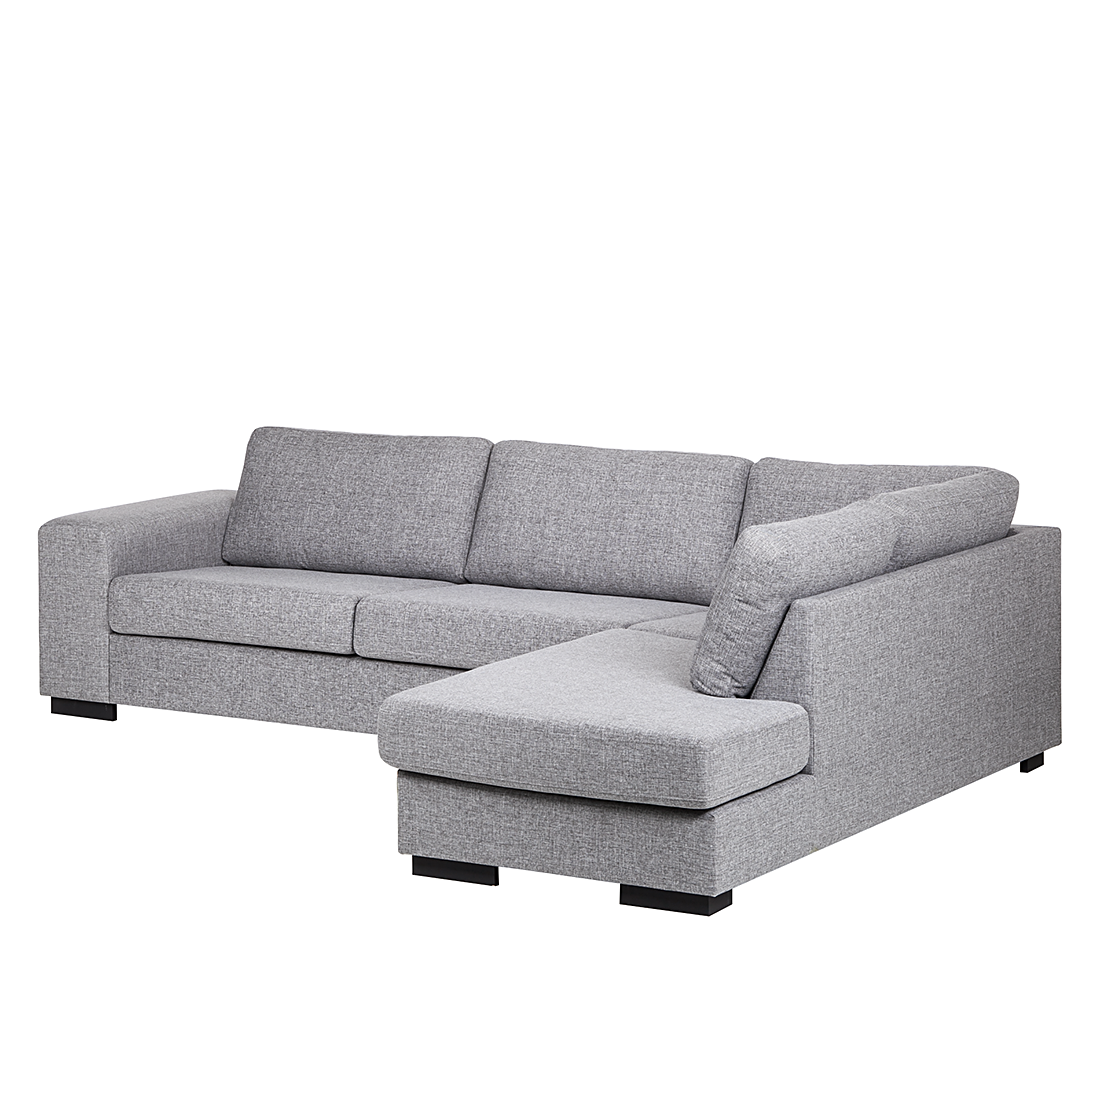 sofa grau 3 sitzer 3 sitzer sofa leidas in grau braun 3 sitzer sofa grau mit relaxfunktion. Black Bedroom Furniture Sets. Home Design Ideas